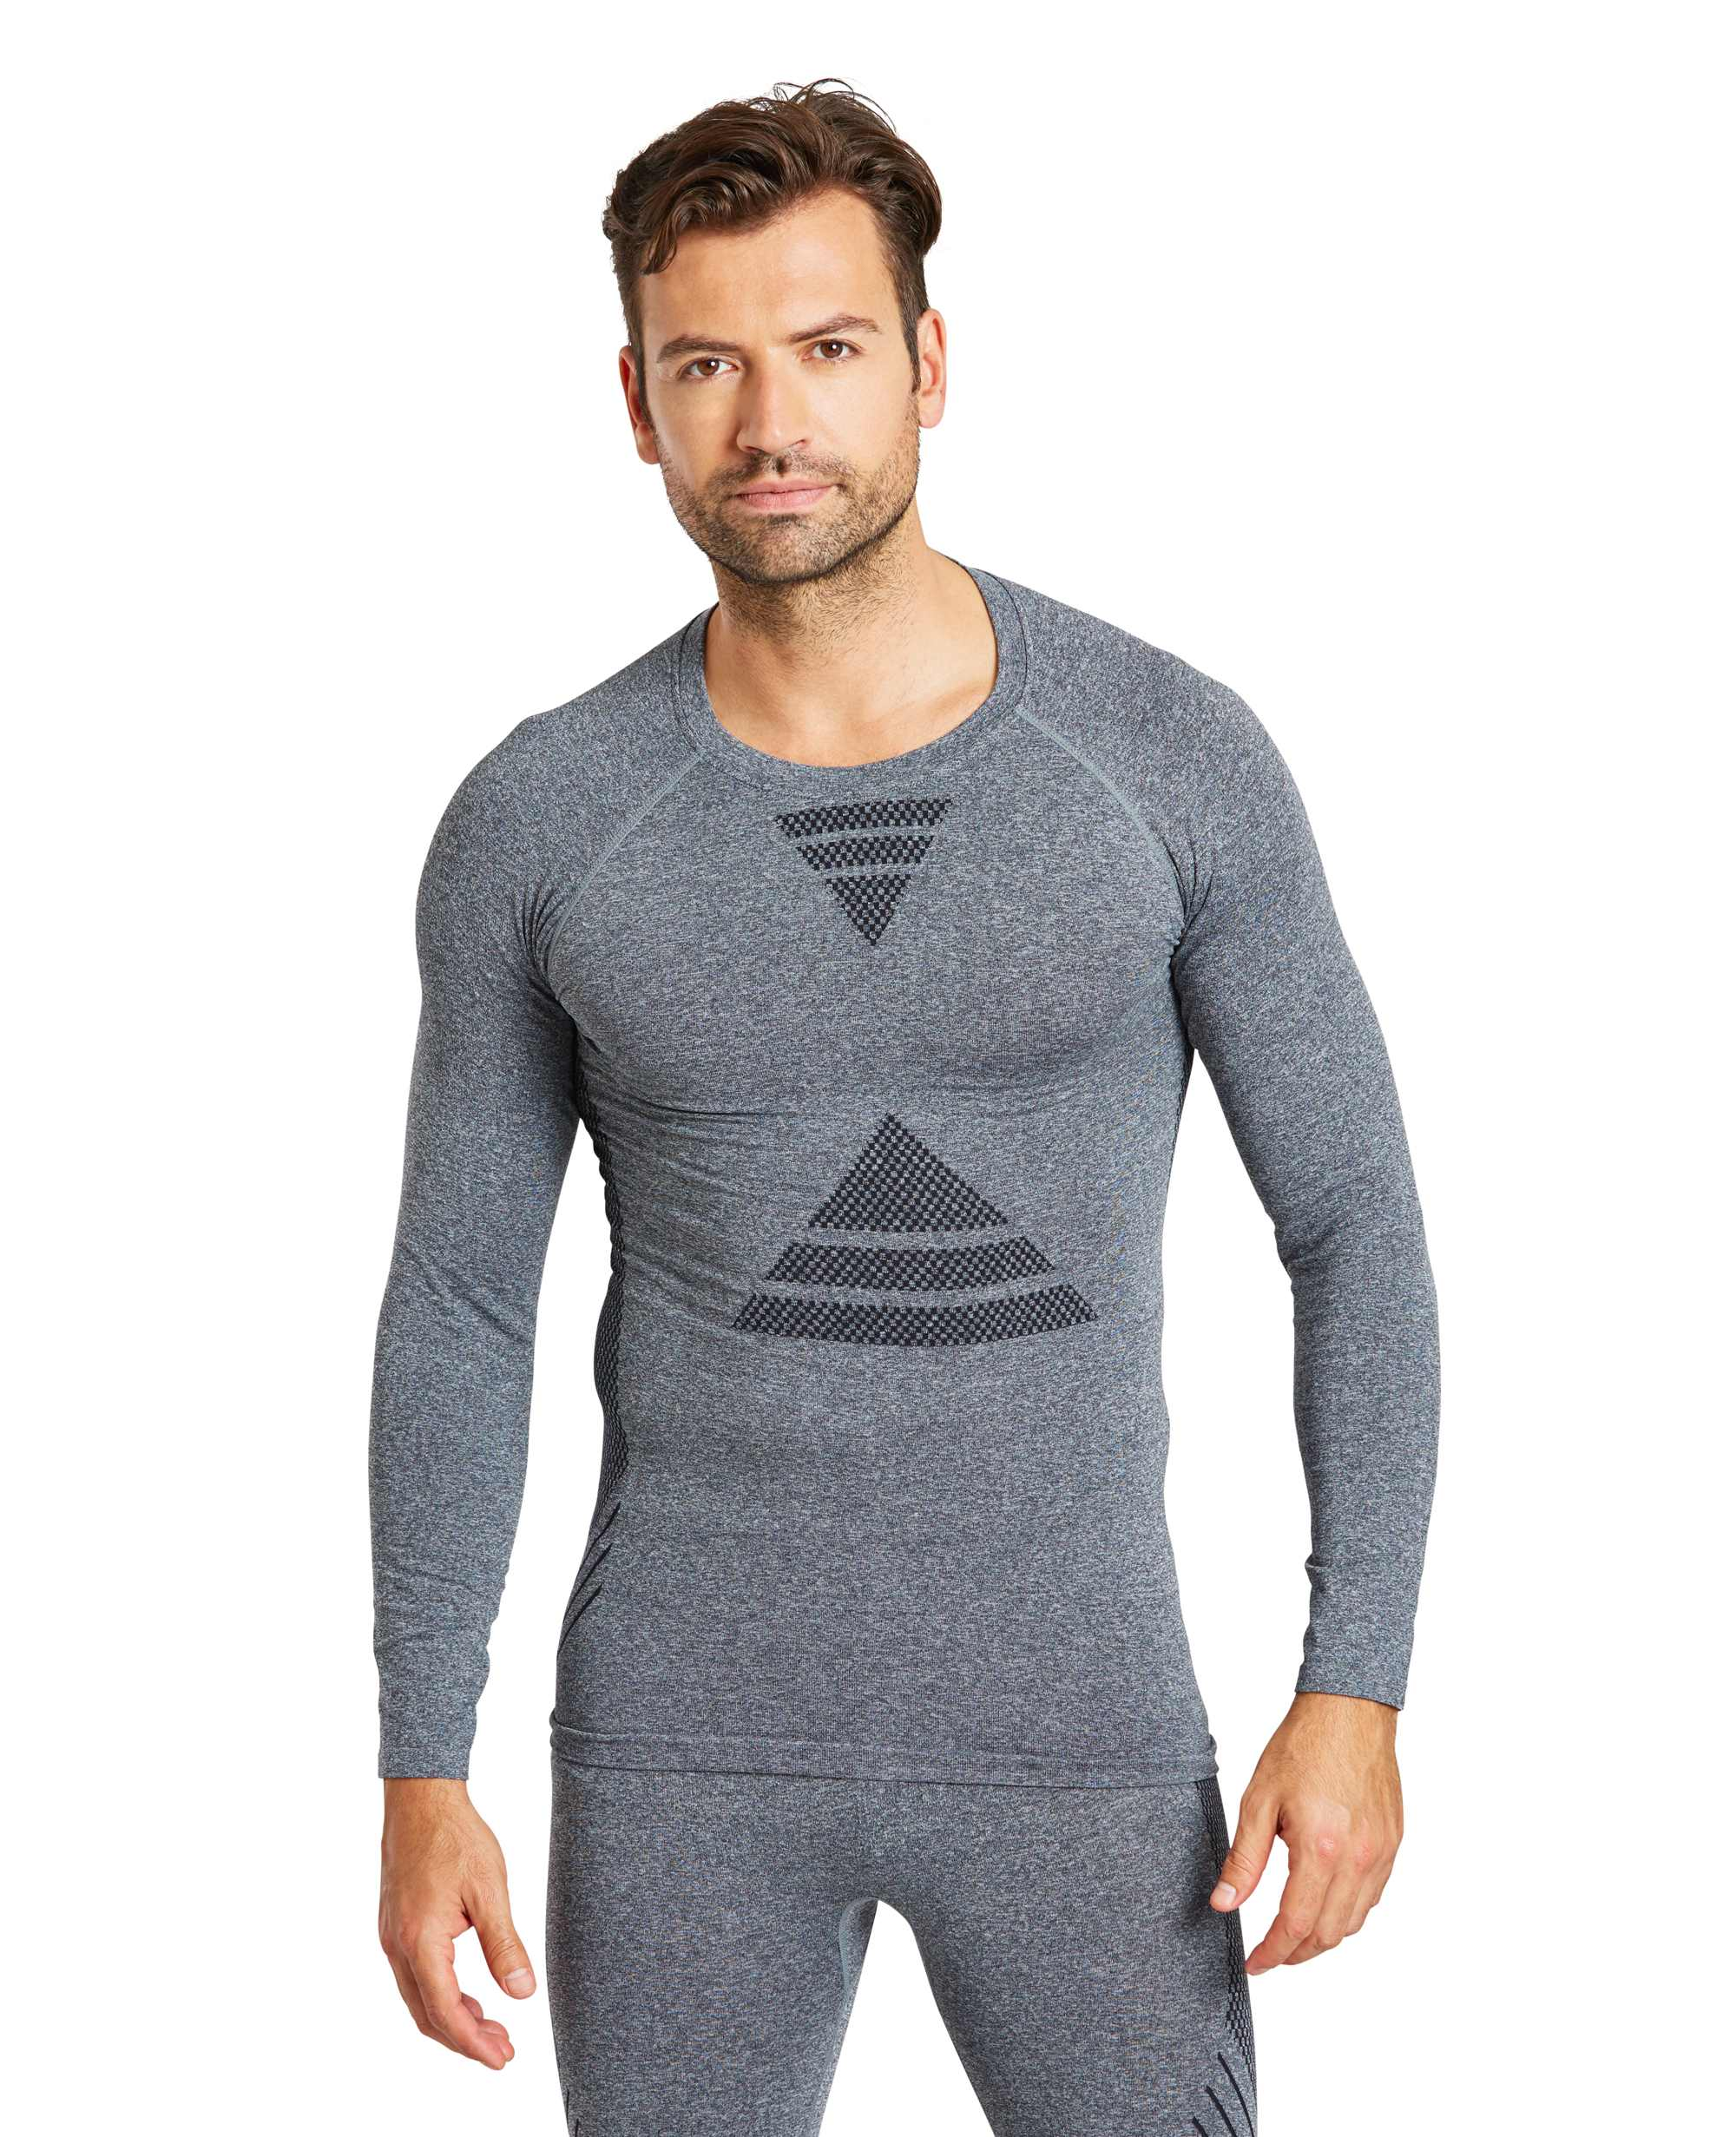 model wearing Zakti Men's Uninterrupted Seamless Base Layer Top Dark Grey and Seamless Pants